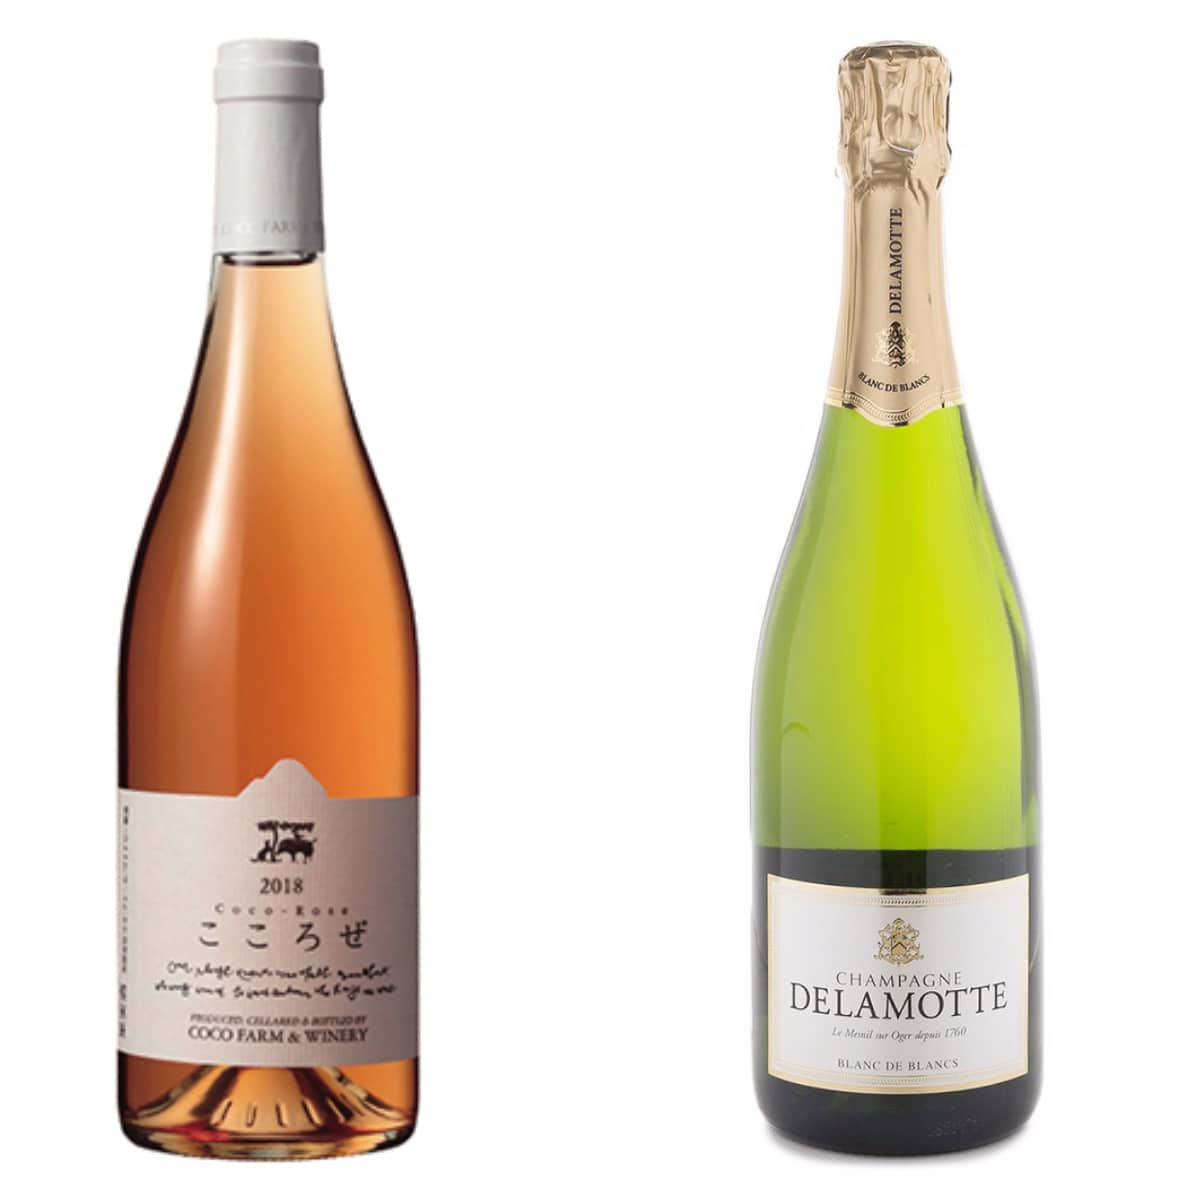 The Coco Farm & Winery Coco Rose 2015 and Delamotte Blanc de Blancs N.V.